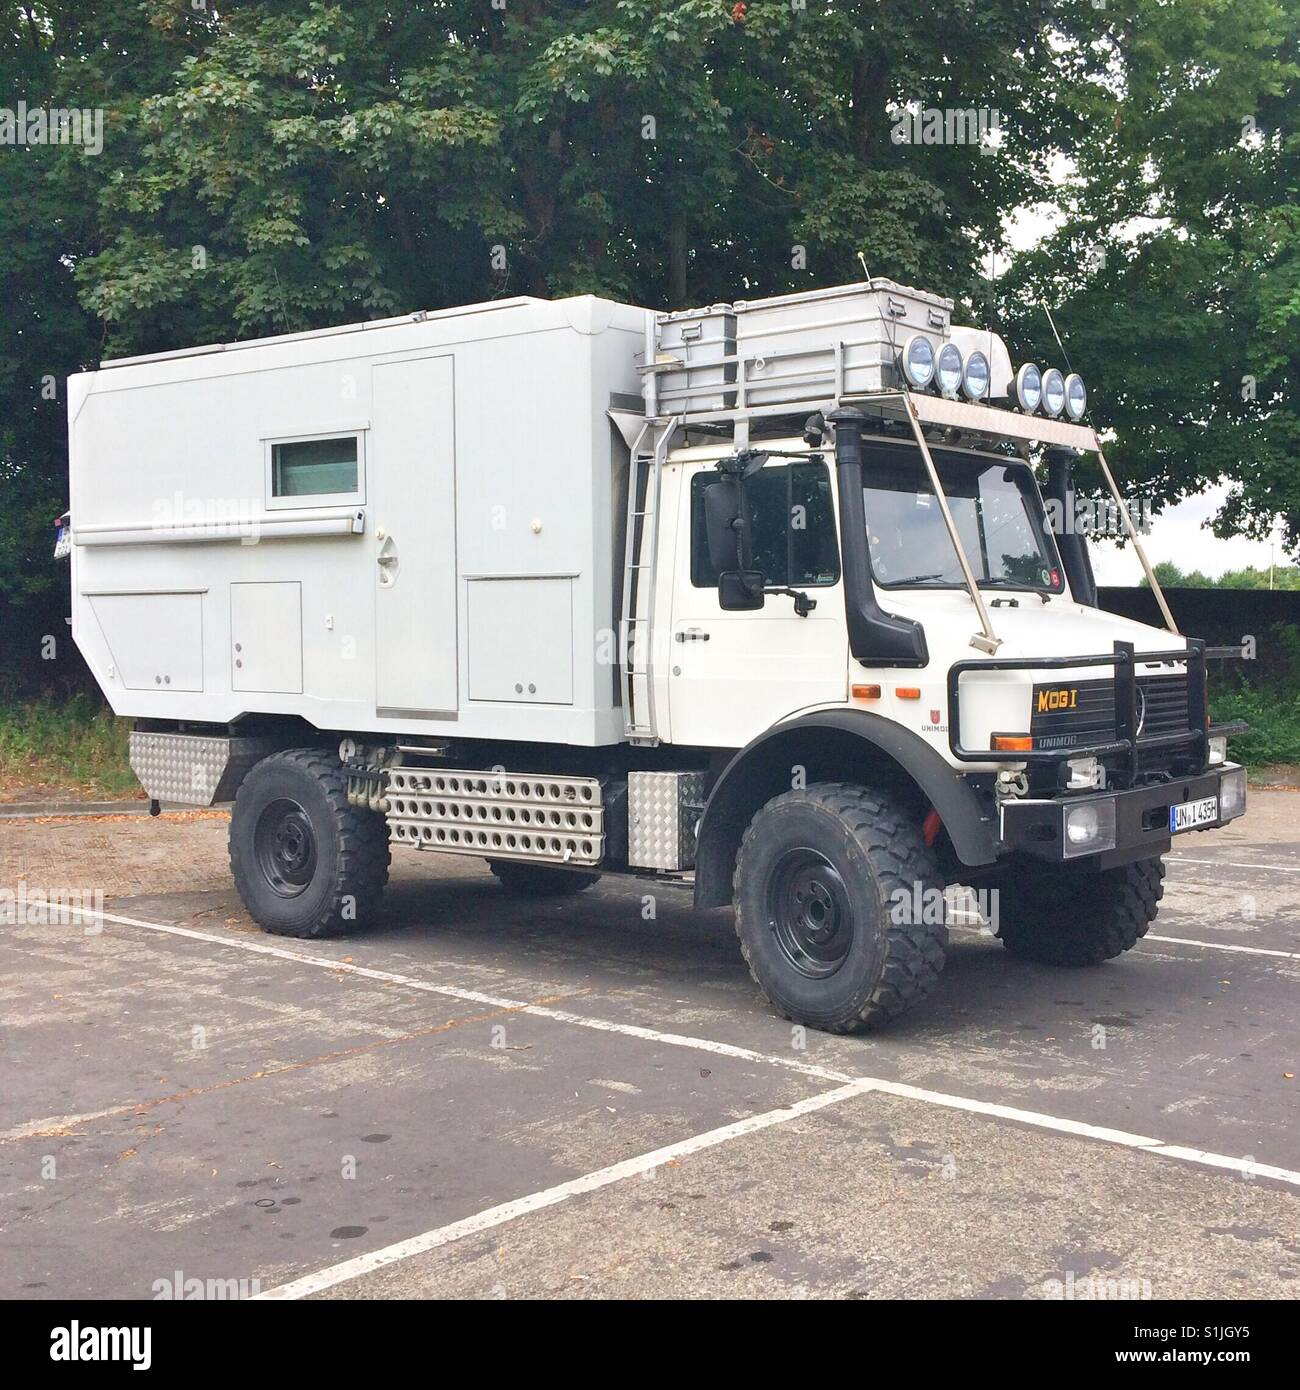 Mercedes Unimog All Terrain Expedition Camper Van